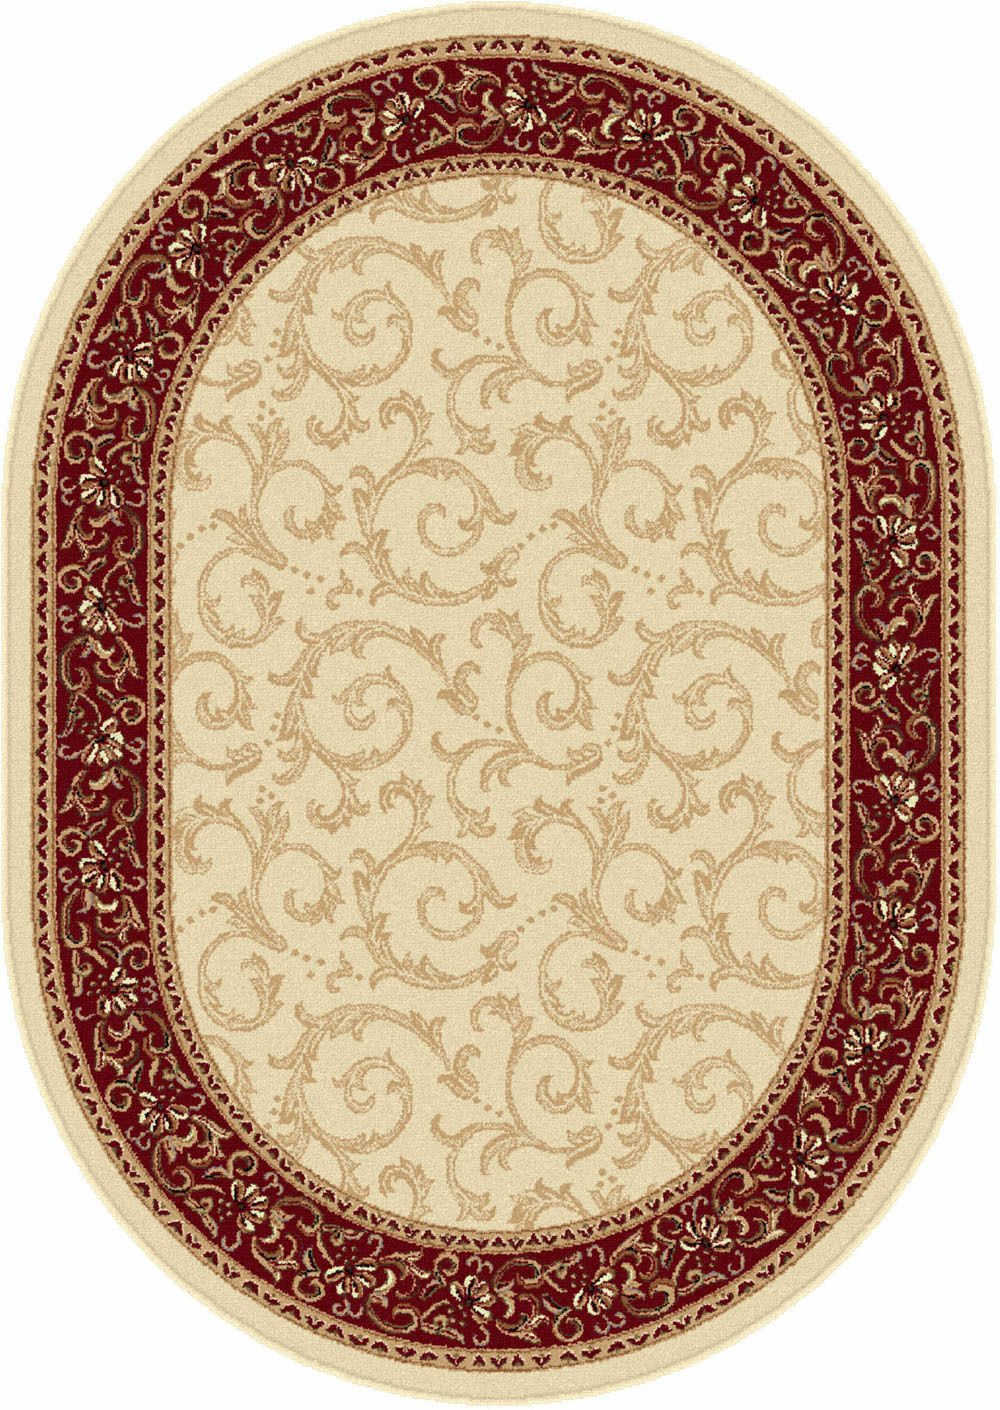 Oval Area Rugs For Sale Ebay